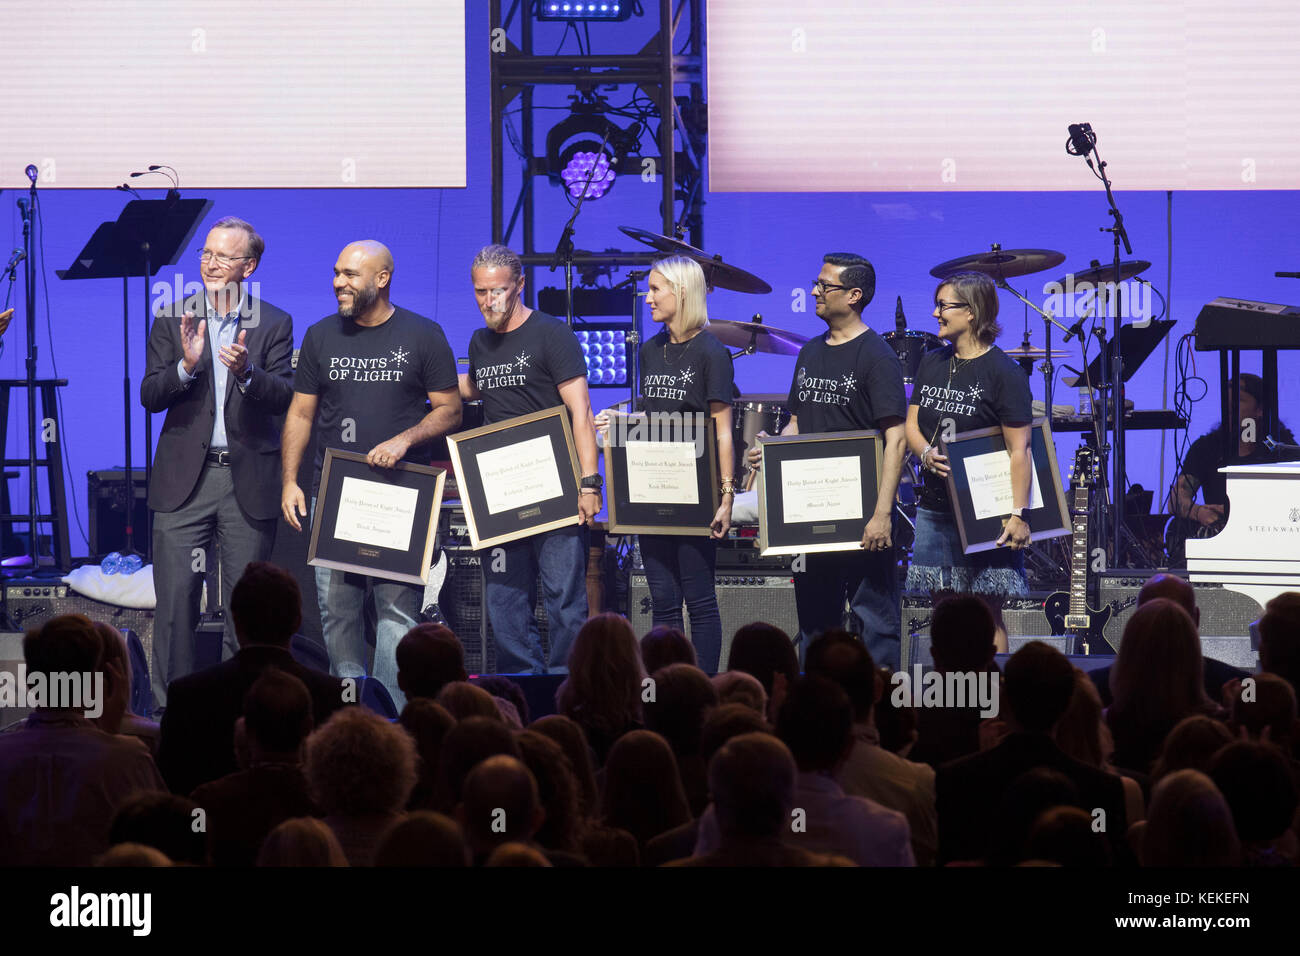 College Station, Texas USA Oct. 21, 2017: Points of Light award winners onstage at Texas A&M University's - Stock Image